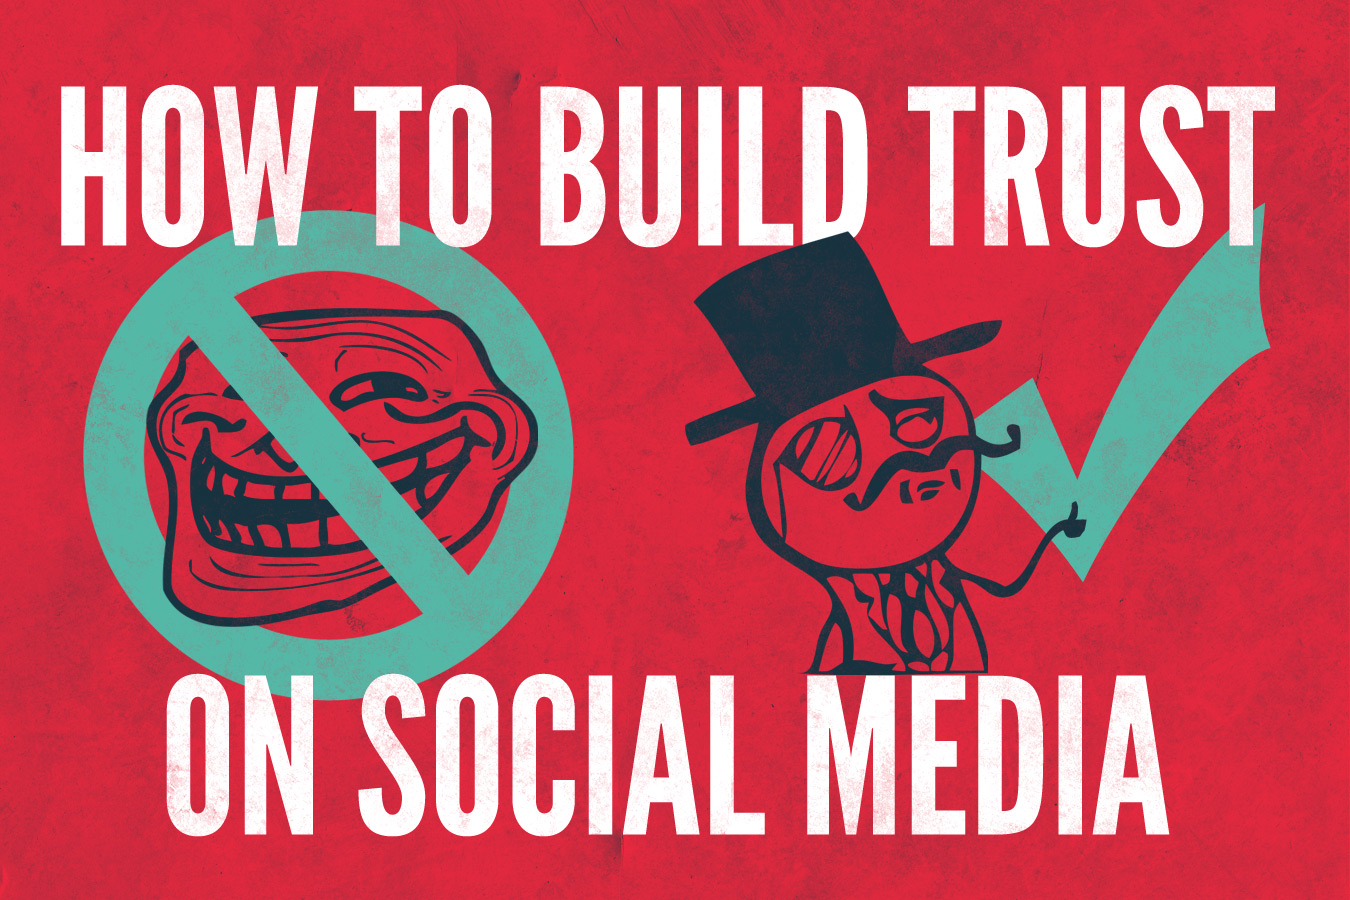 How to Build Trust on Social Media